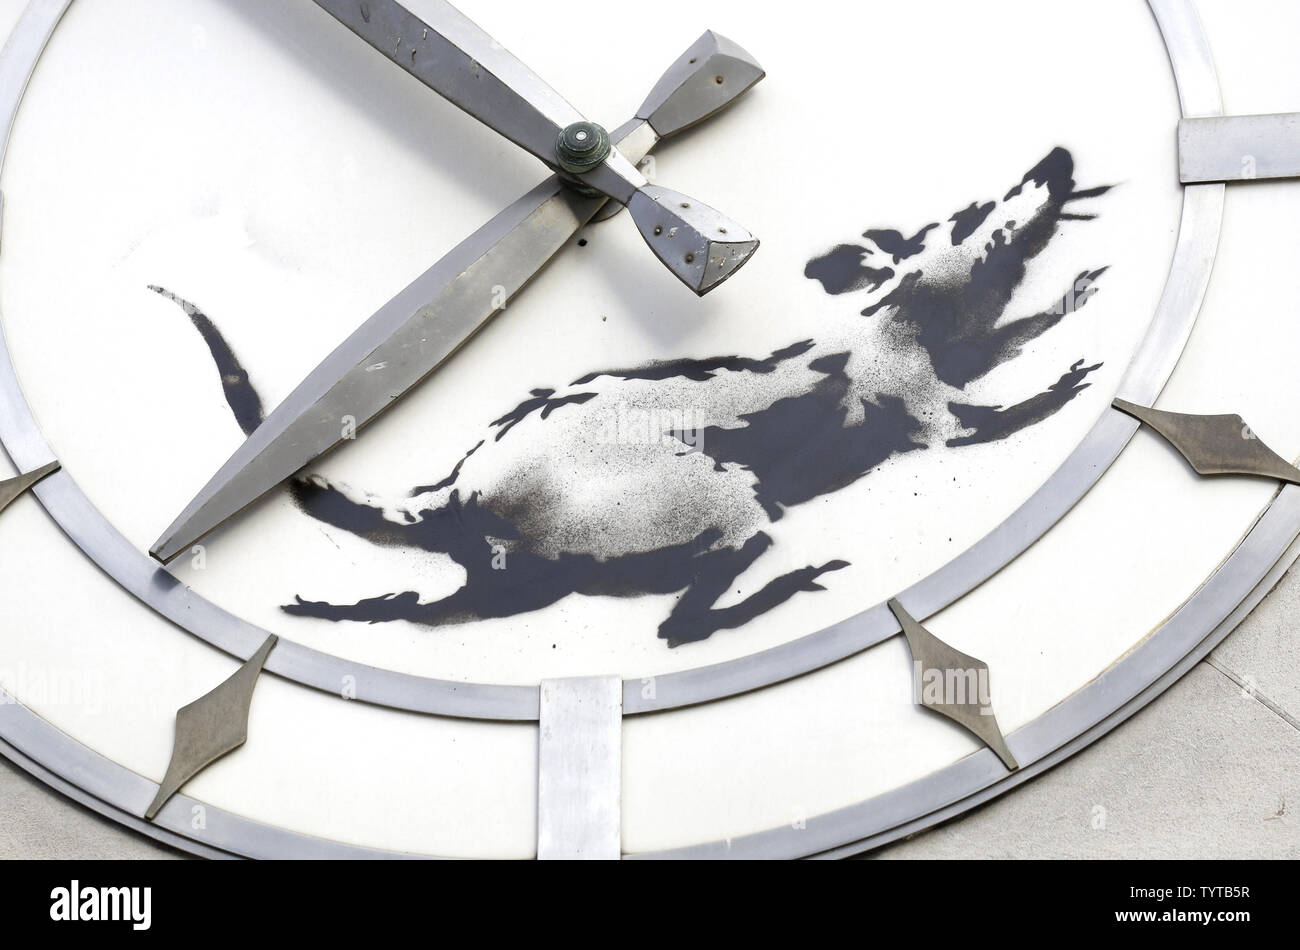 A painting of a rat running in a street clock face like a